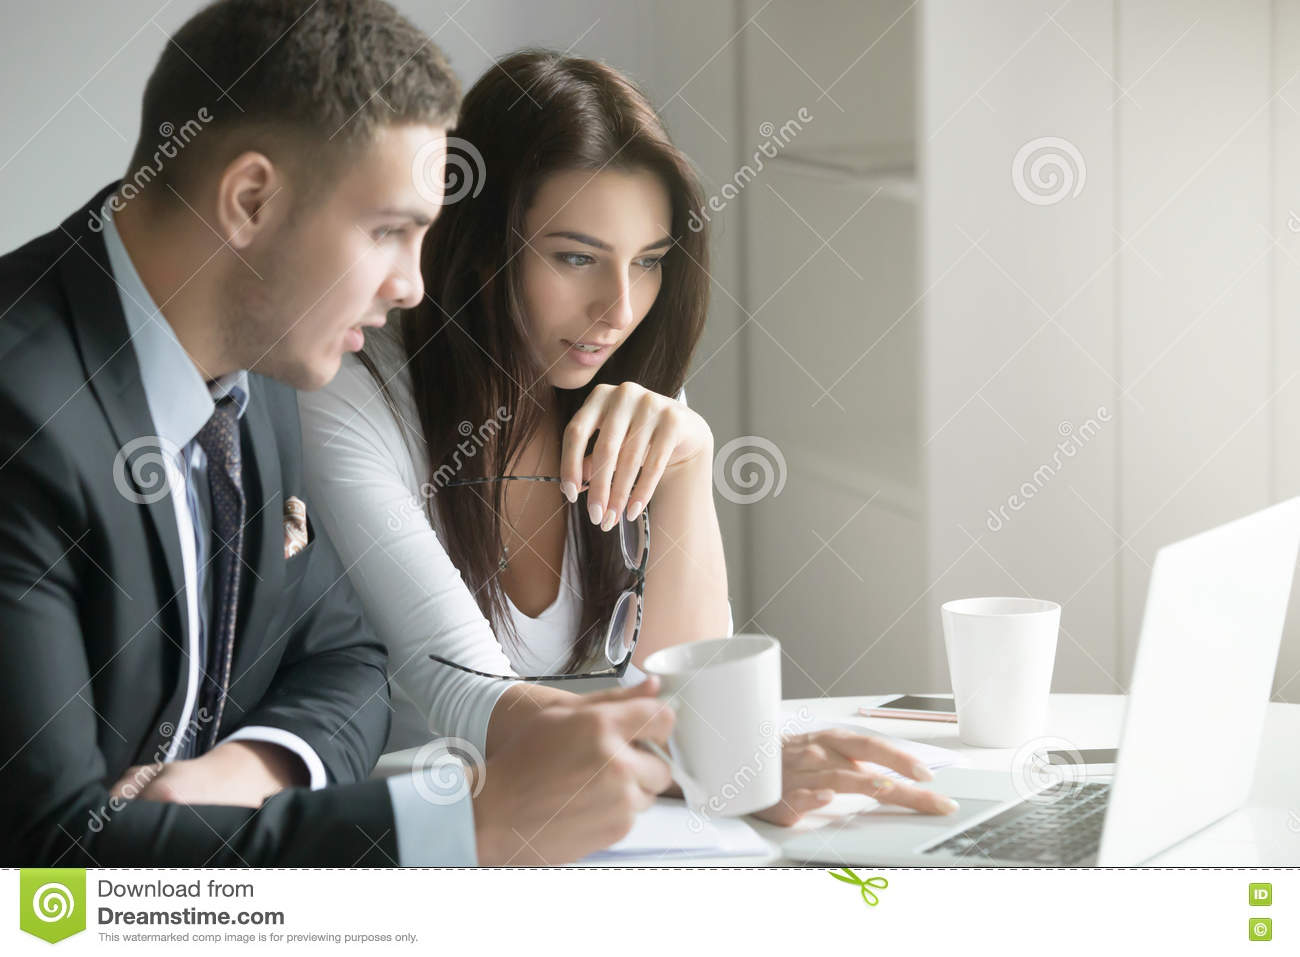 Businessman and businesswoman at office desk, looking at the lap